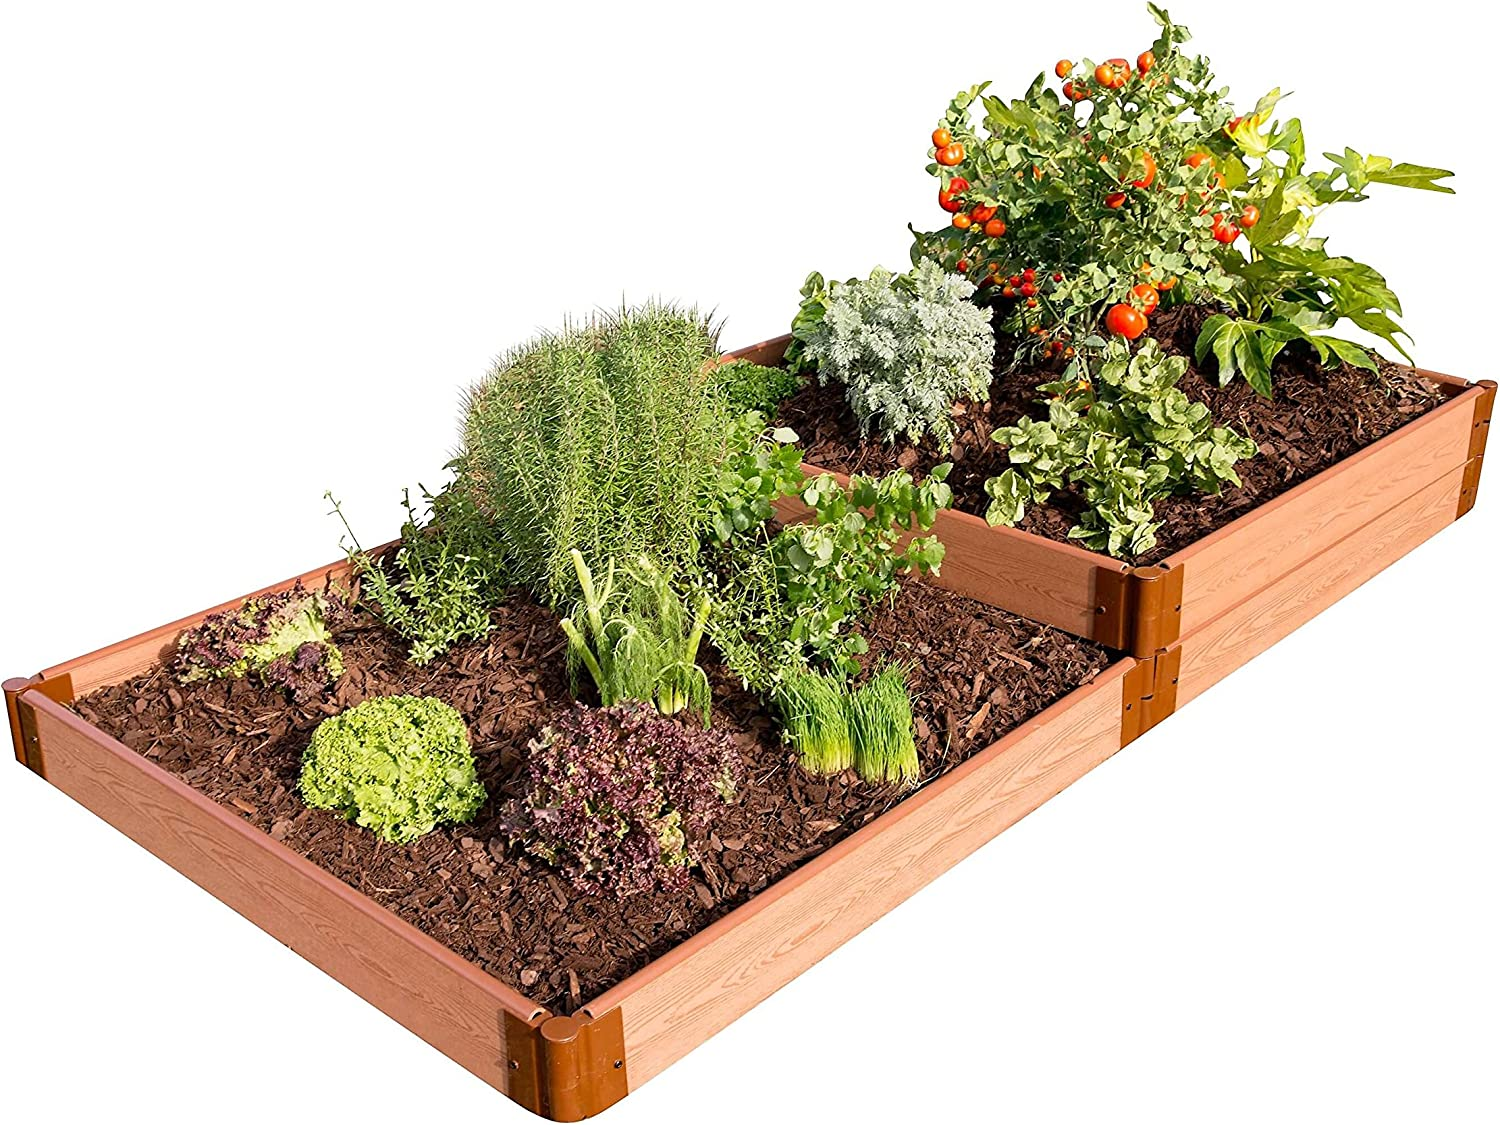 Amazon Com Frame It All Tool Free Classic Sienna Raised Garden Bed Terraced 4 X 8 X 11 2 Profile Garden Outdoor